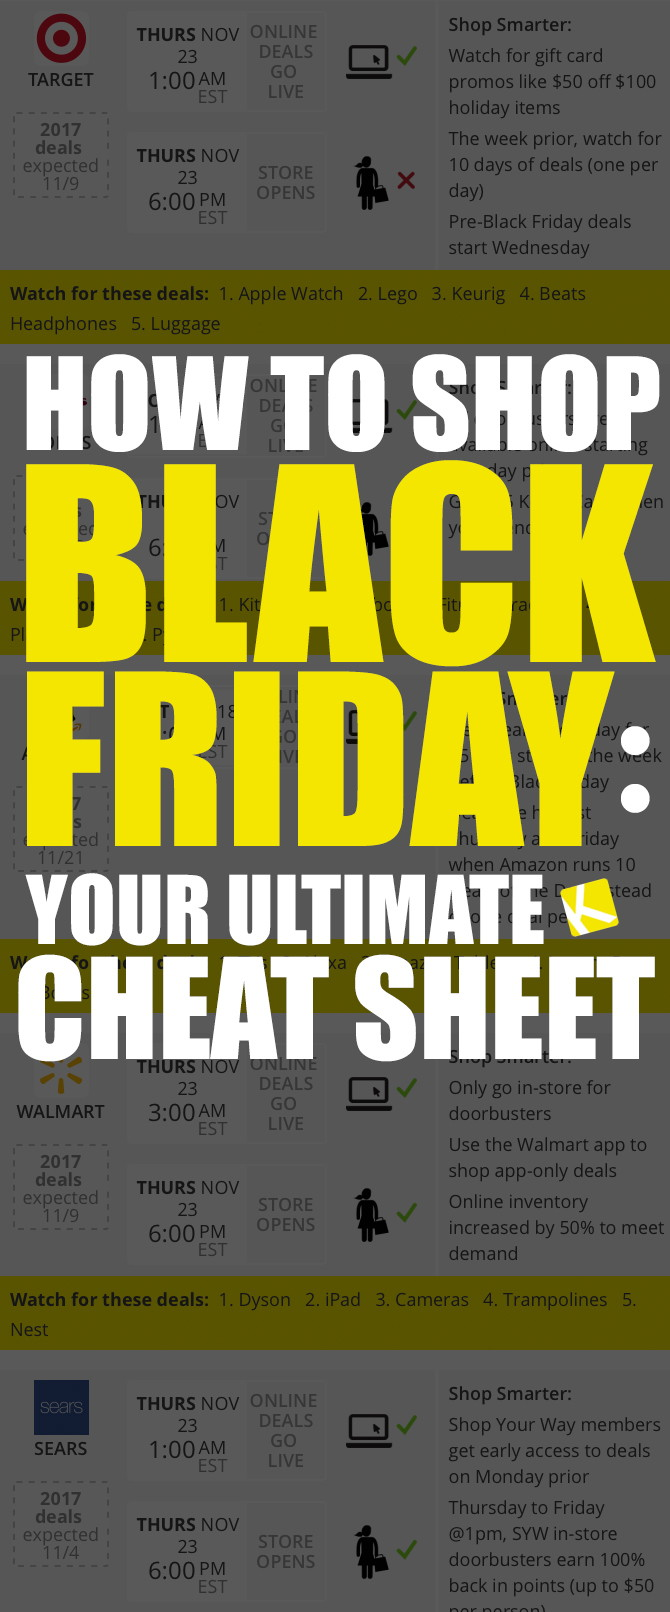 How To Shop Black Friday 2018 Deals Your Ultimate Cheat